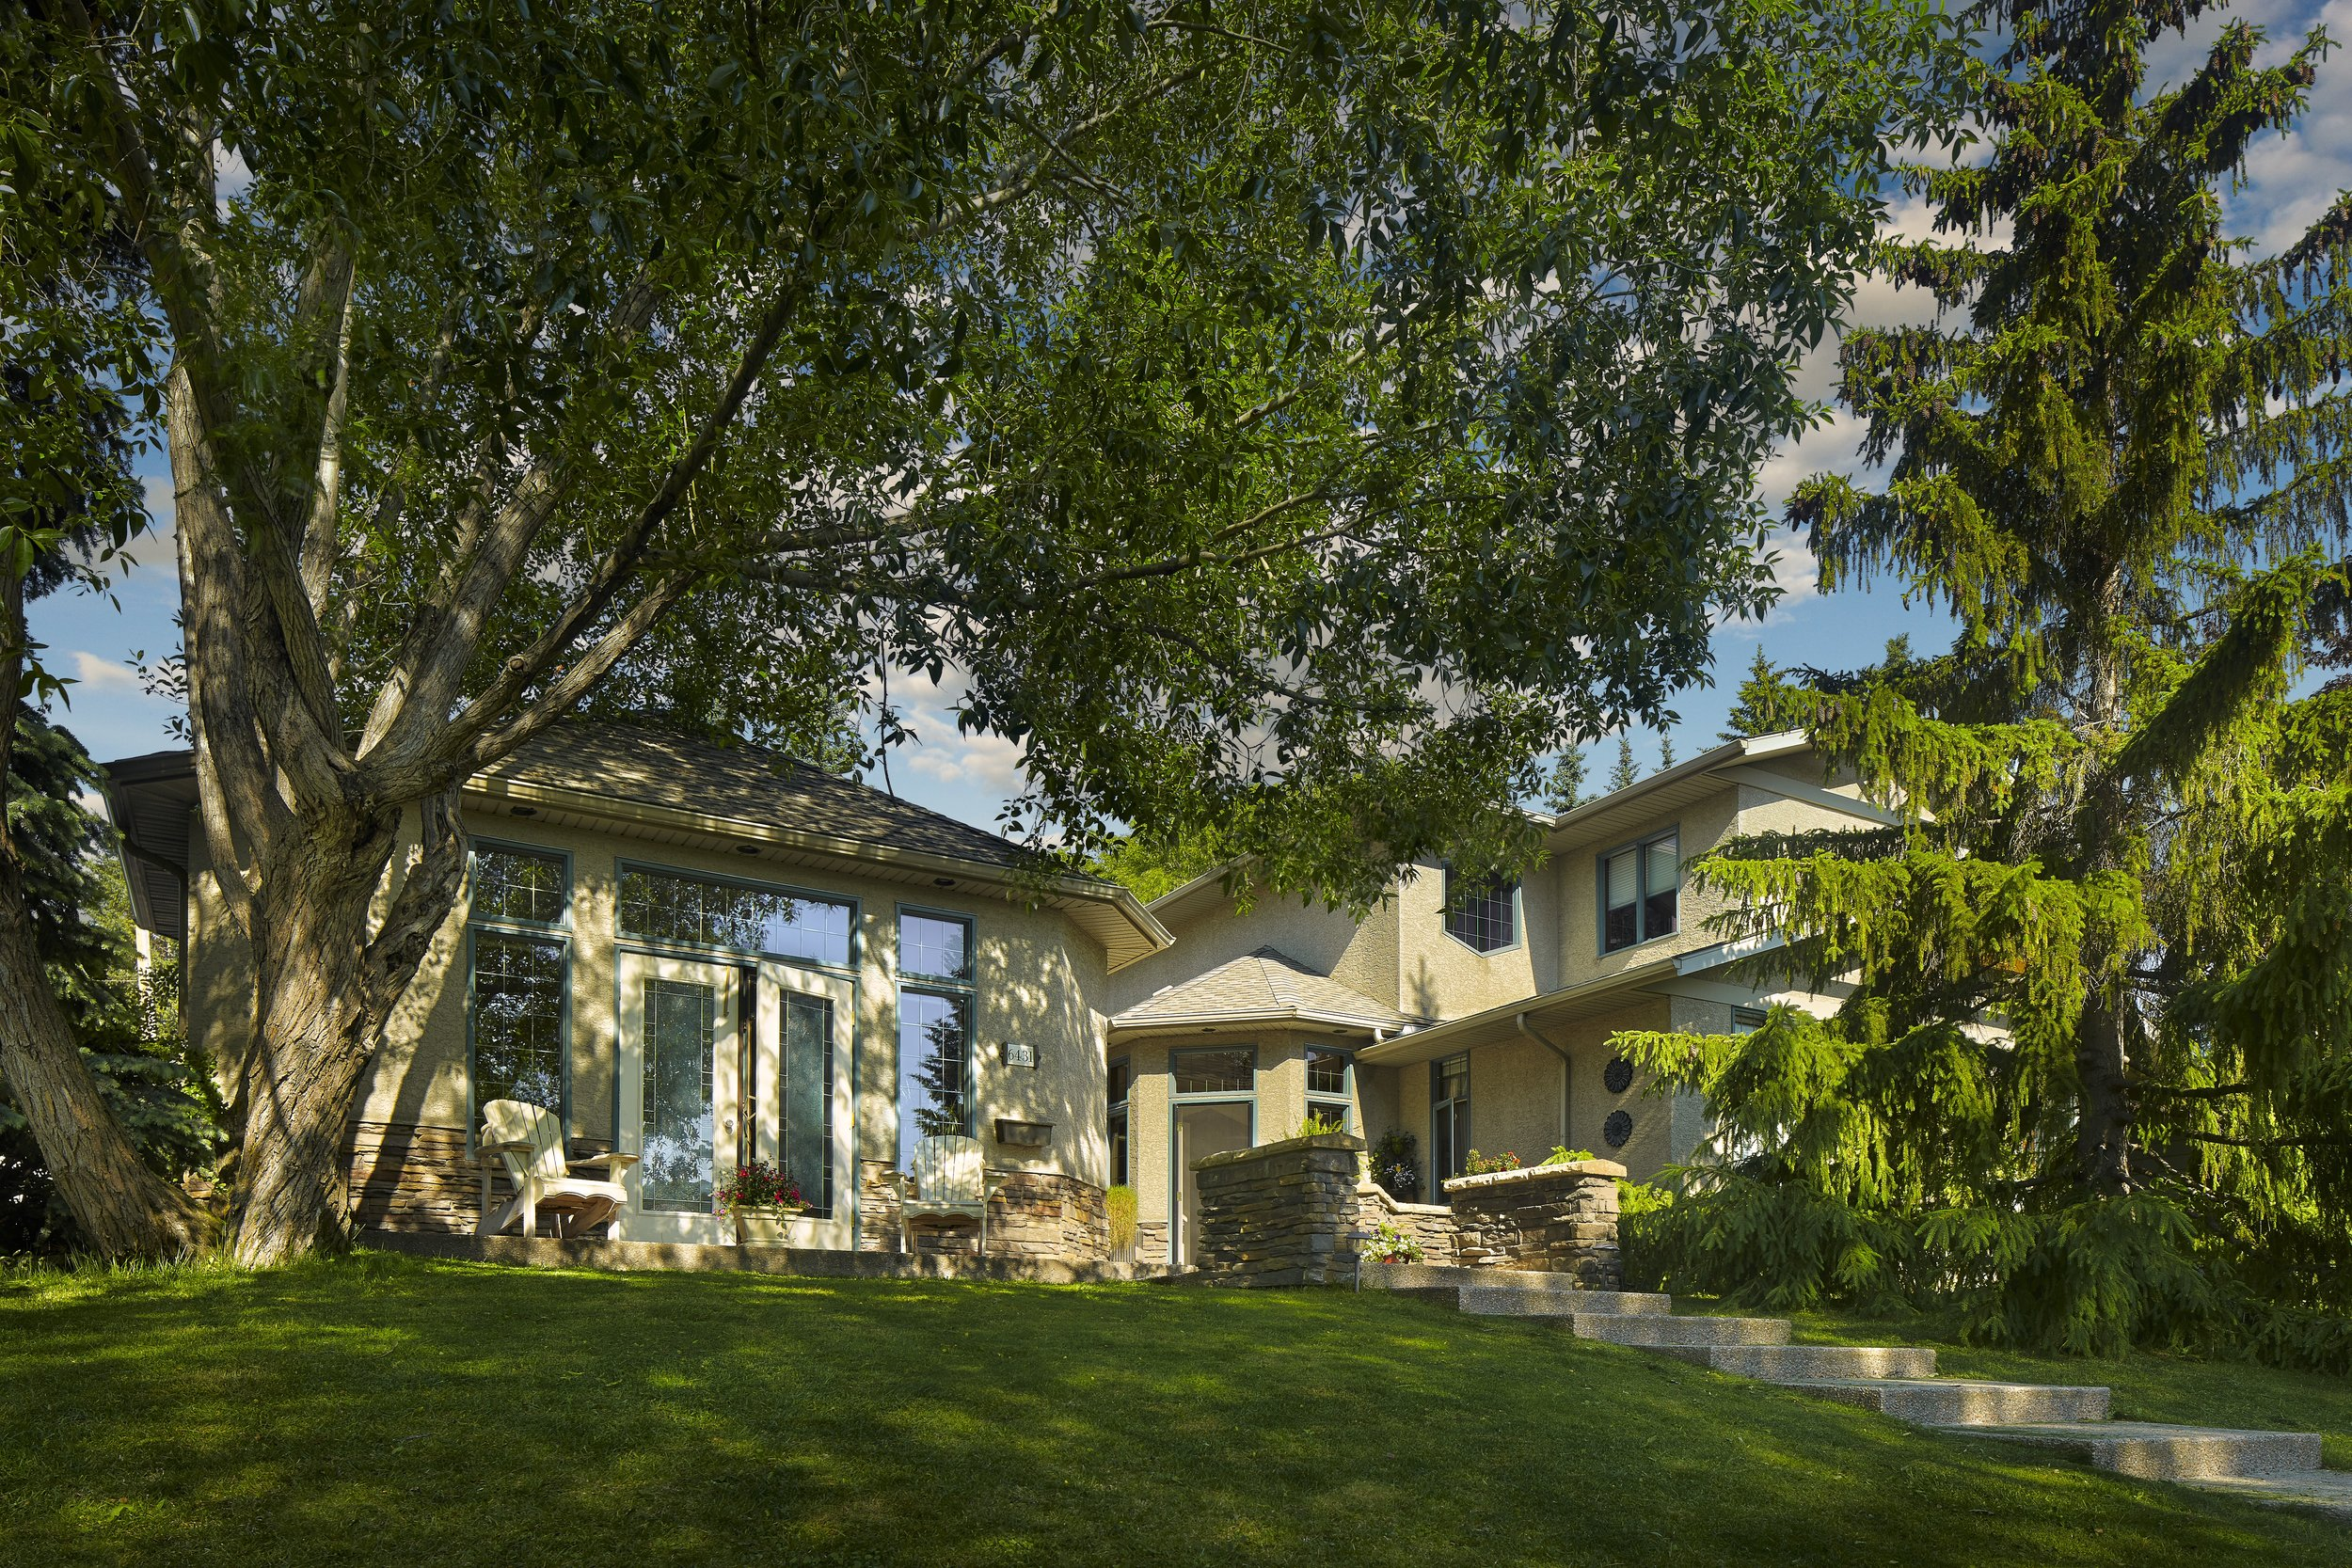 Exterior Renovation in the Calgary community of North Glenmore Park